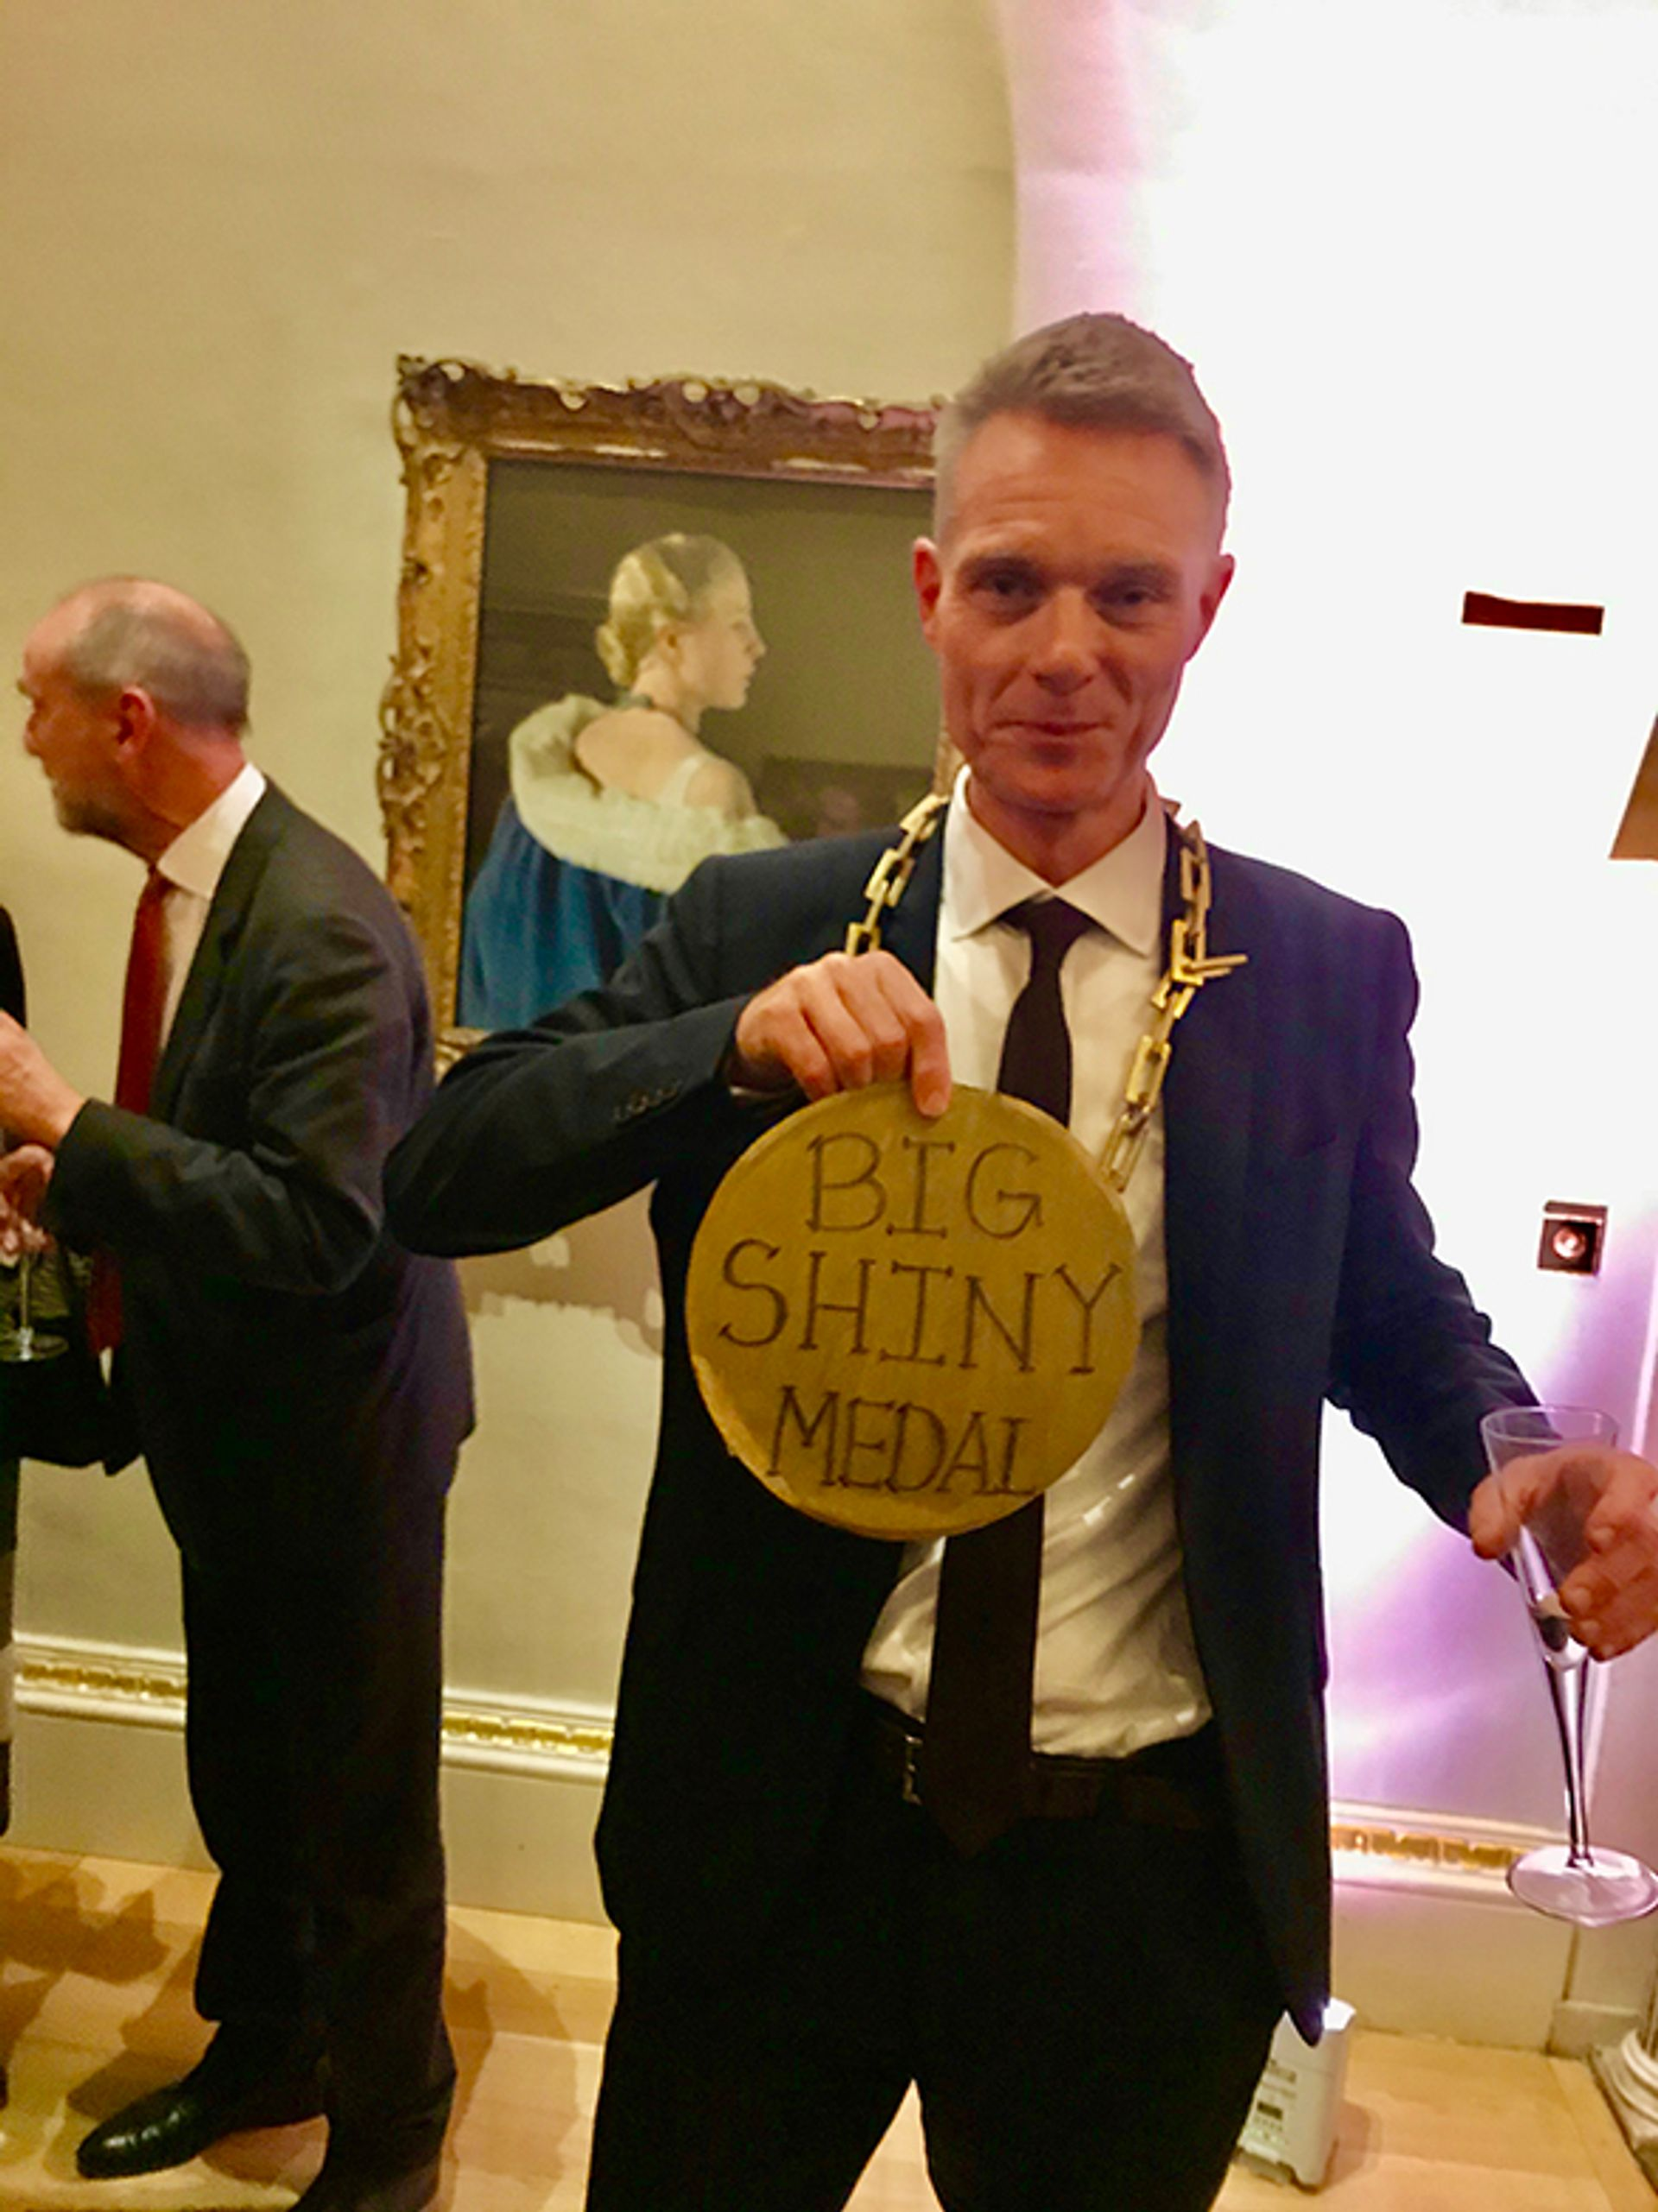 Former RA artistic director Tim Marlow with his Big Shiny Medal Courtesy of Louisa Buck